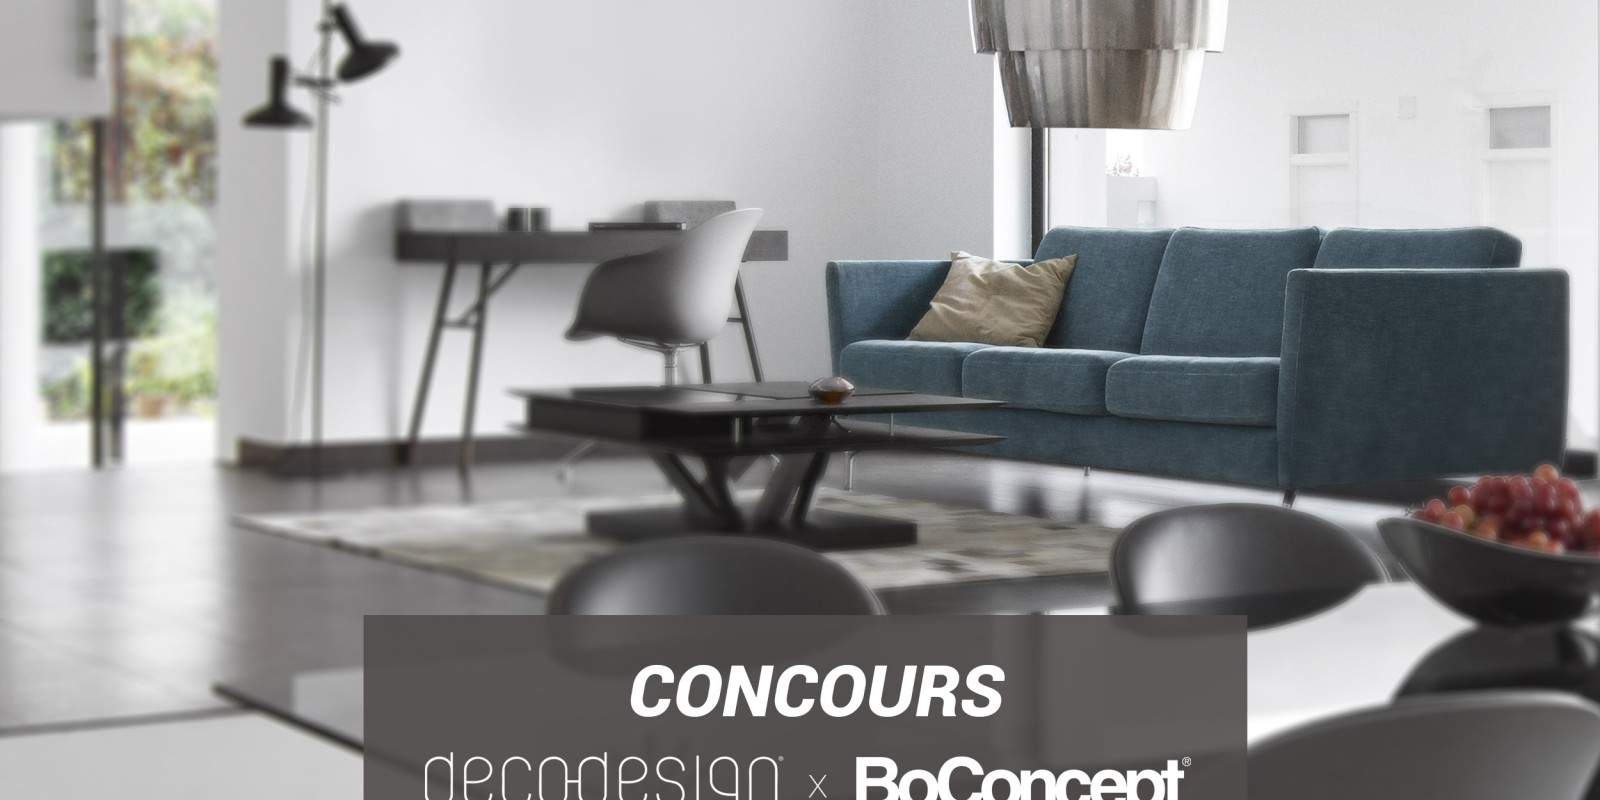 boconcept anglet interesting the cars the star in this. Black Bedroom Furniture Sets. Home Design Ideas